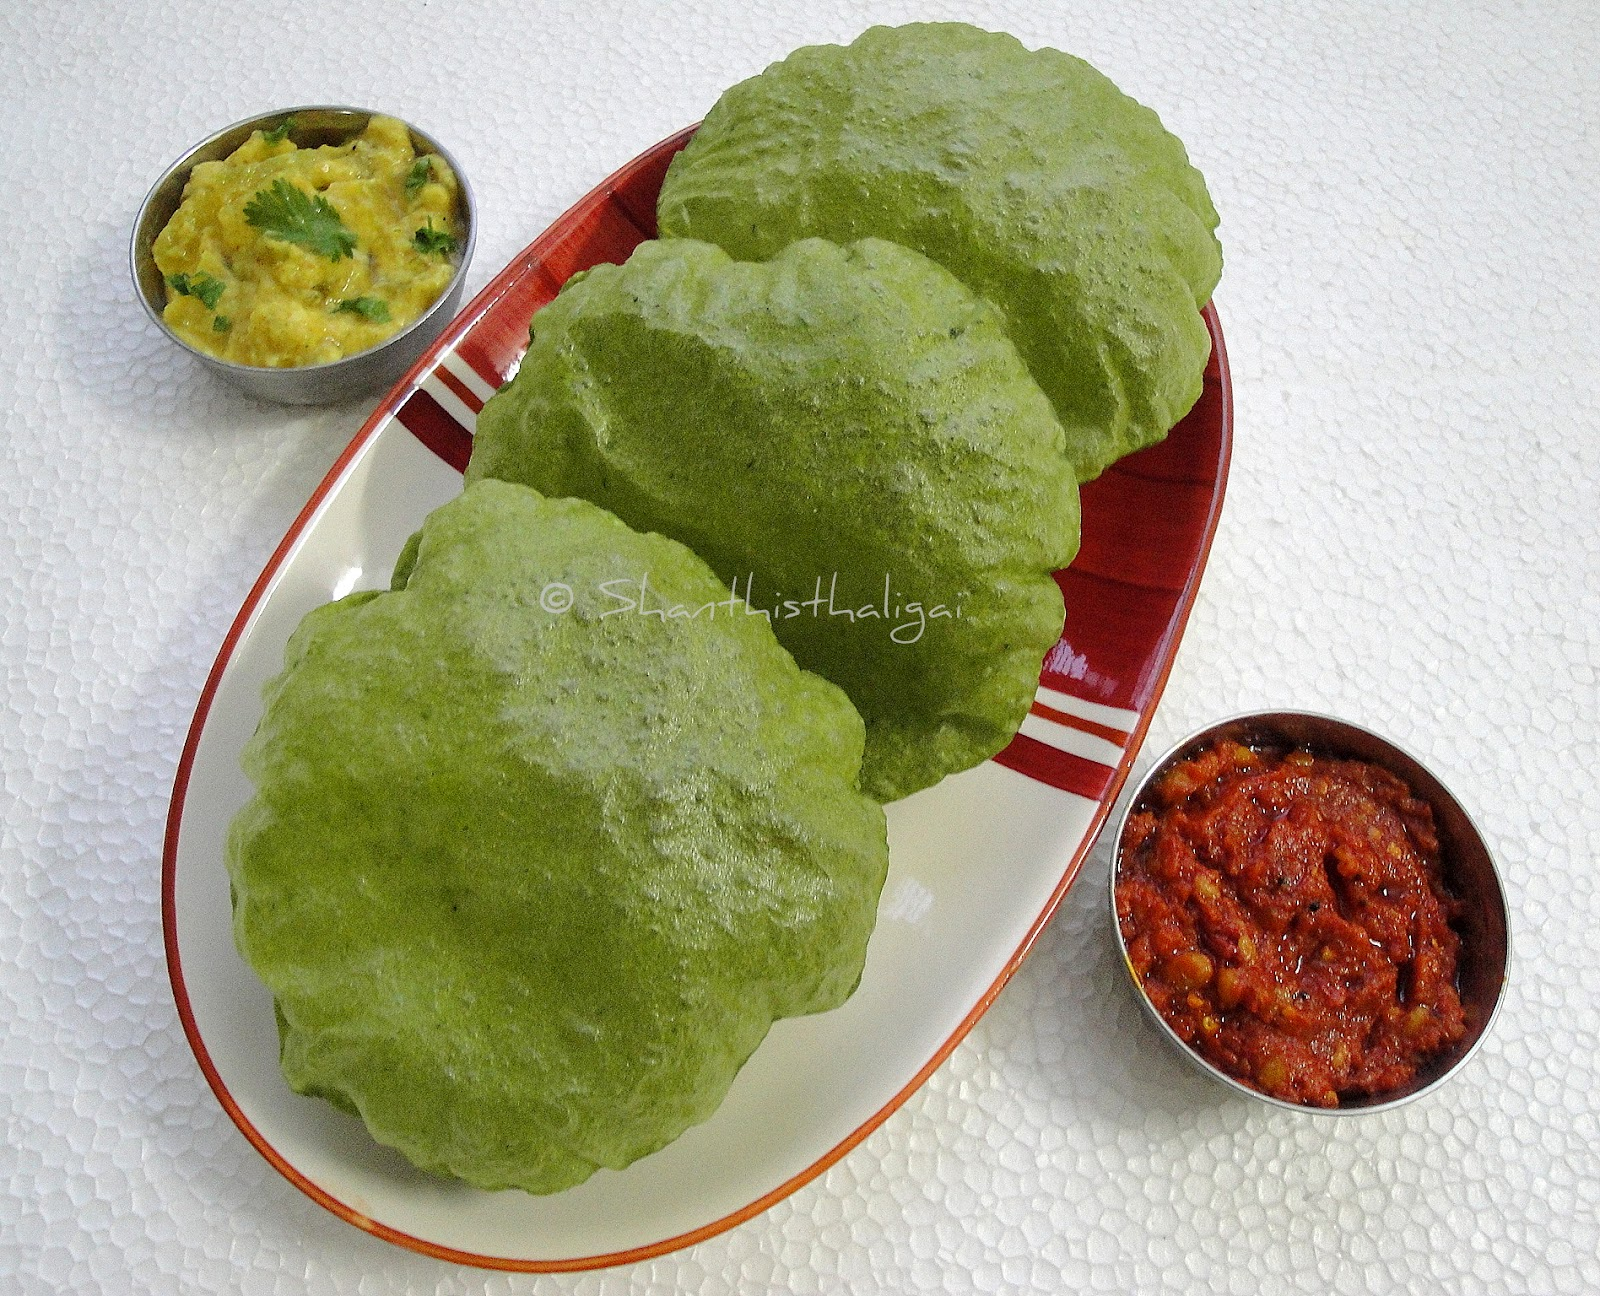 PALAK POORI, PALAK PURI, HOW TO MAKE PALAK POORI